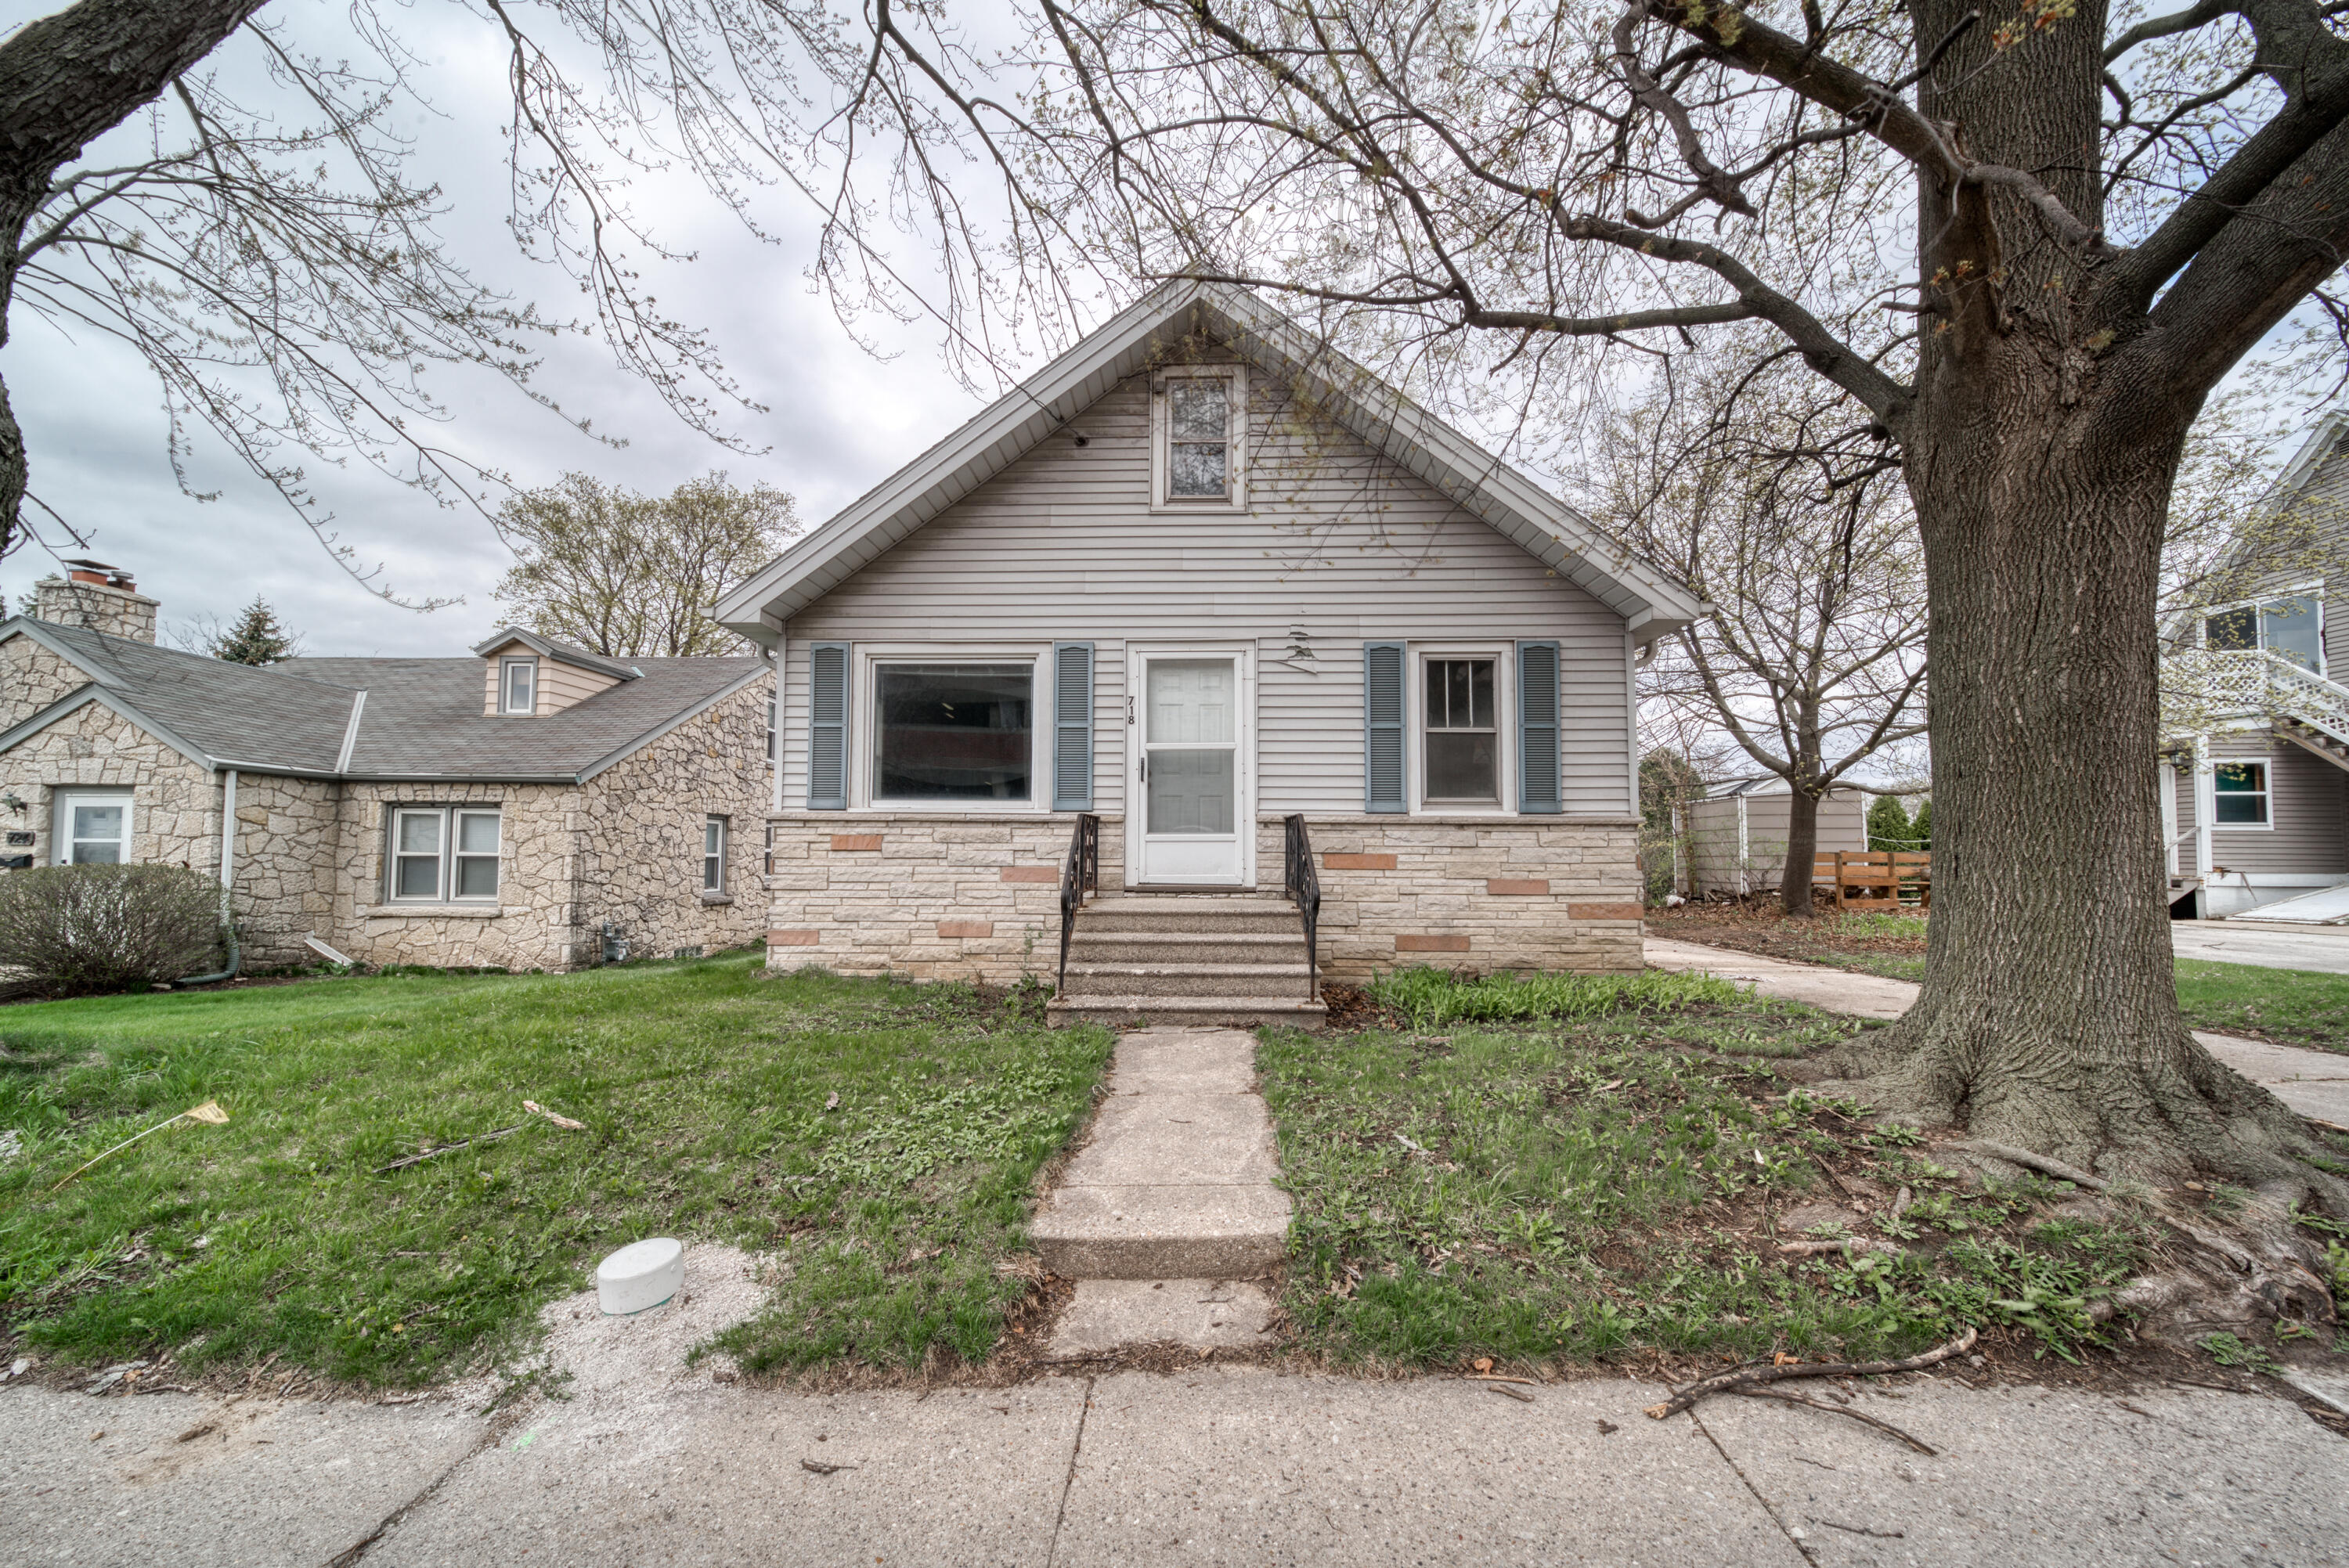 718 Lawndale Ave, Waukesha, Wisconsin 53188, 3 Bedrooms Bedrooms, ,1 BathroomBathrooms,Single-Family,For Sale,Lawndale Ave,1735698